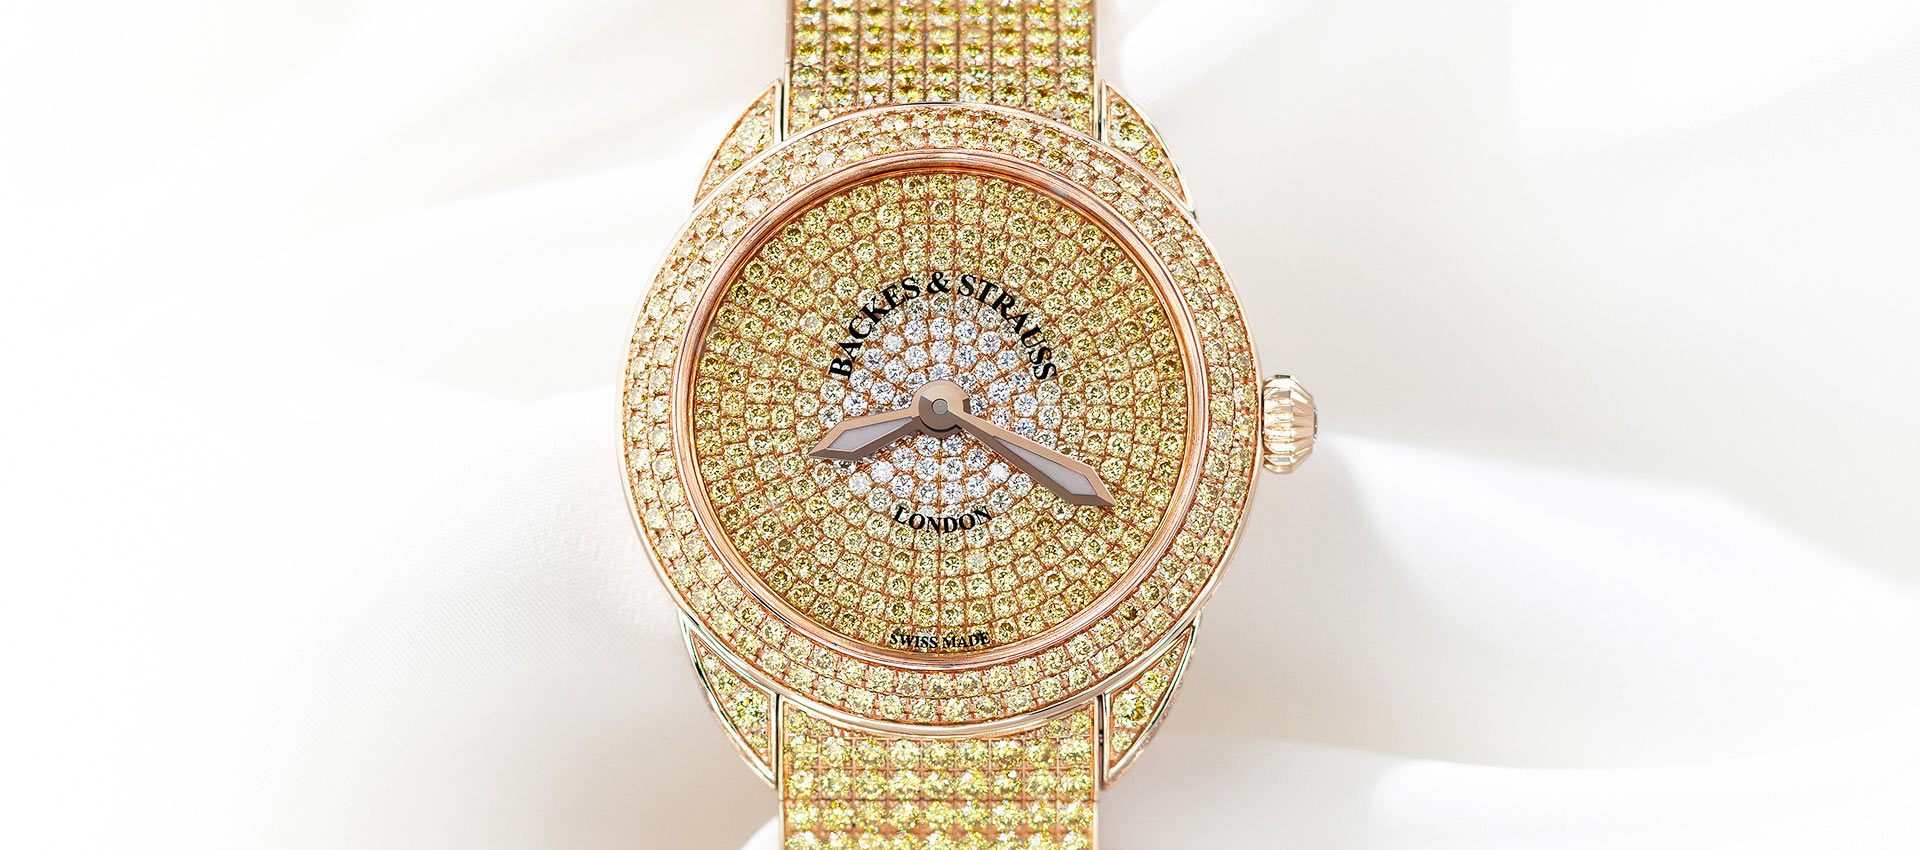 Piccadilly Renaissance Ballerina Jonquil 33 diamond encrusted watch for ladies